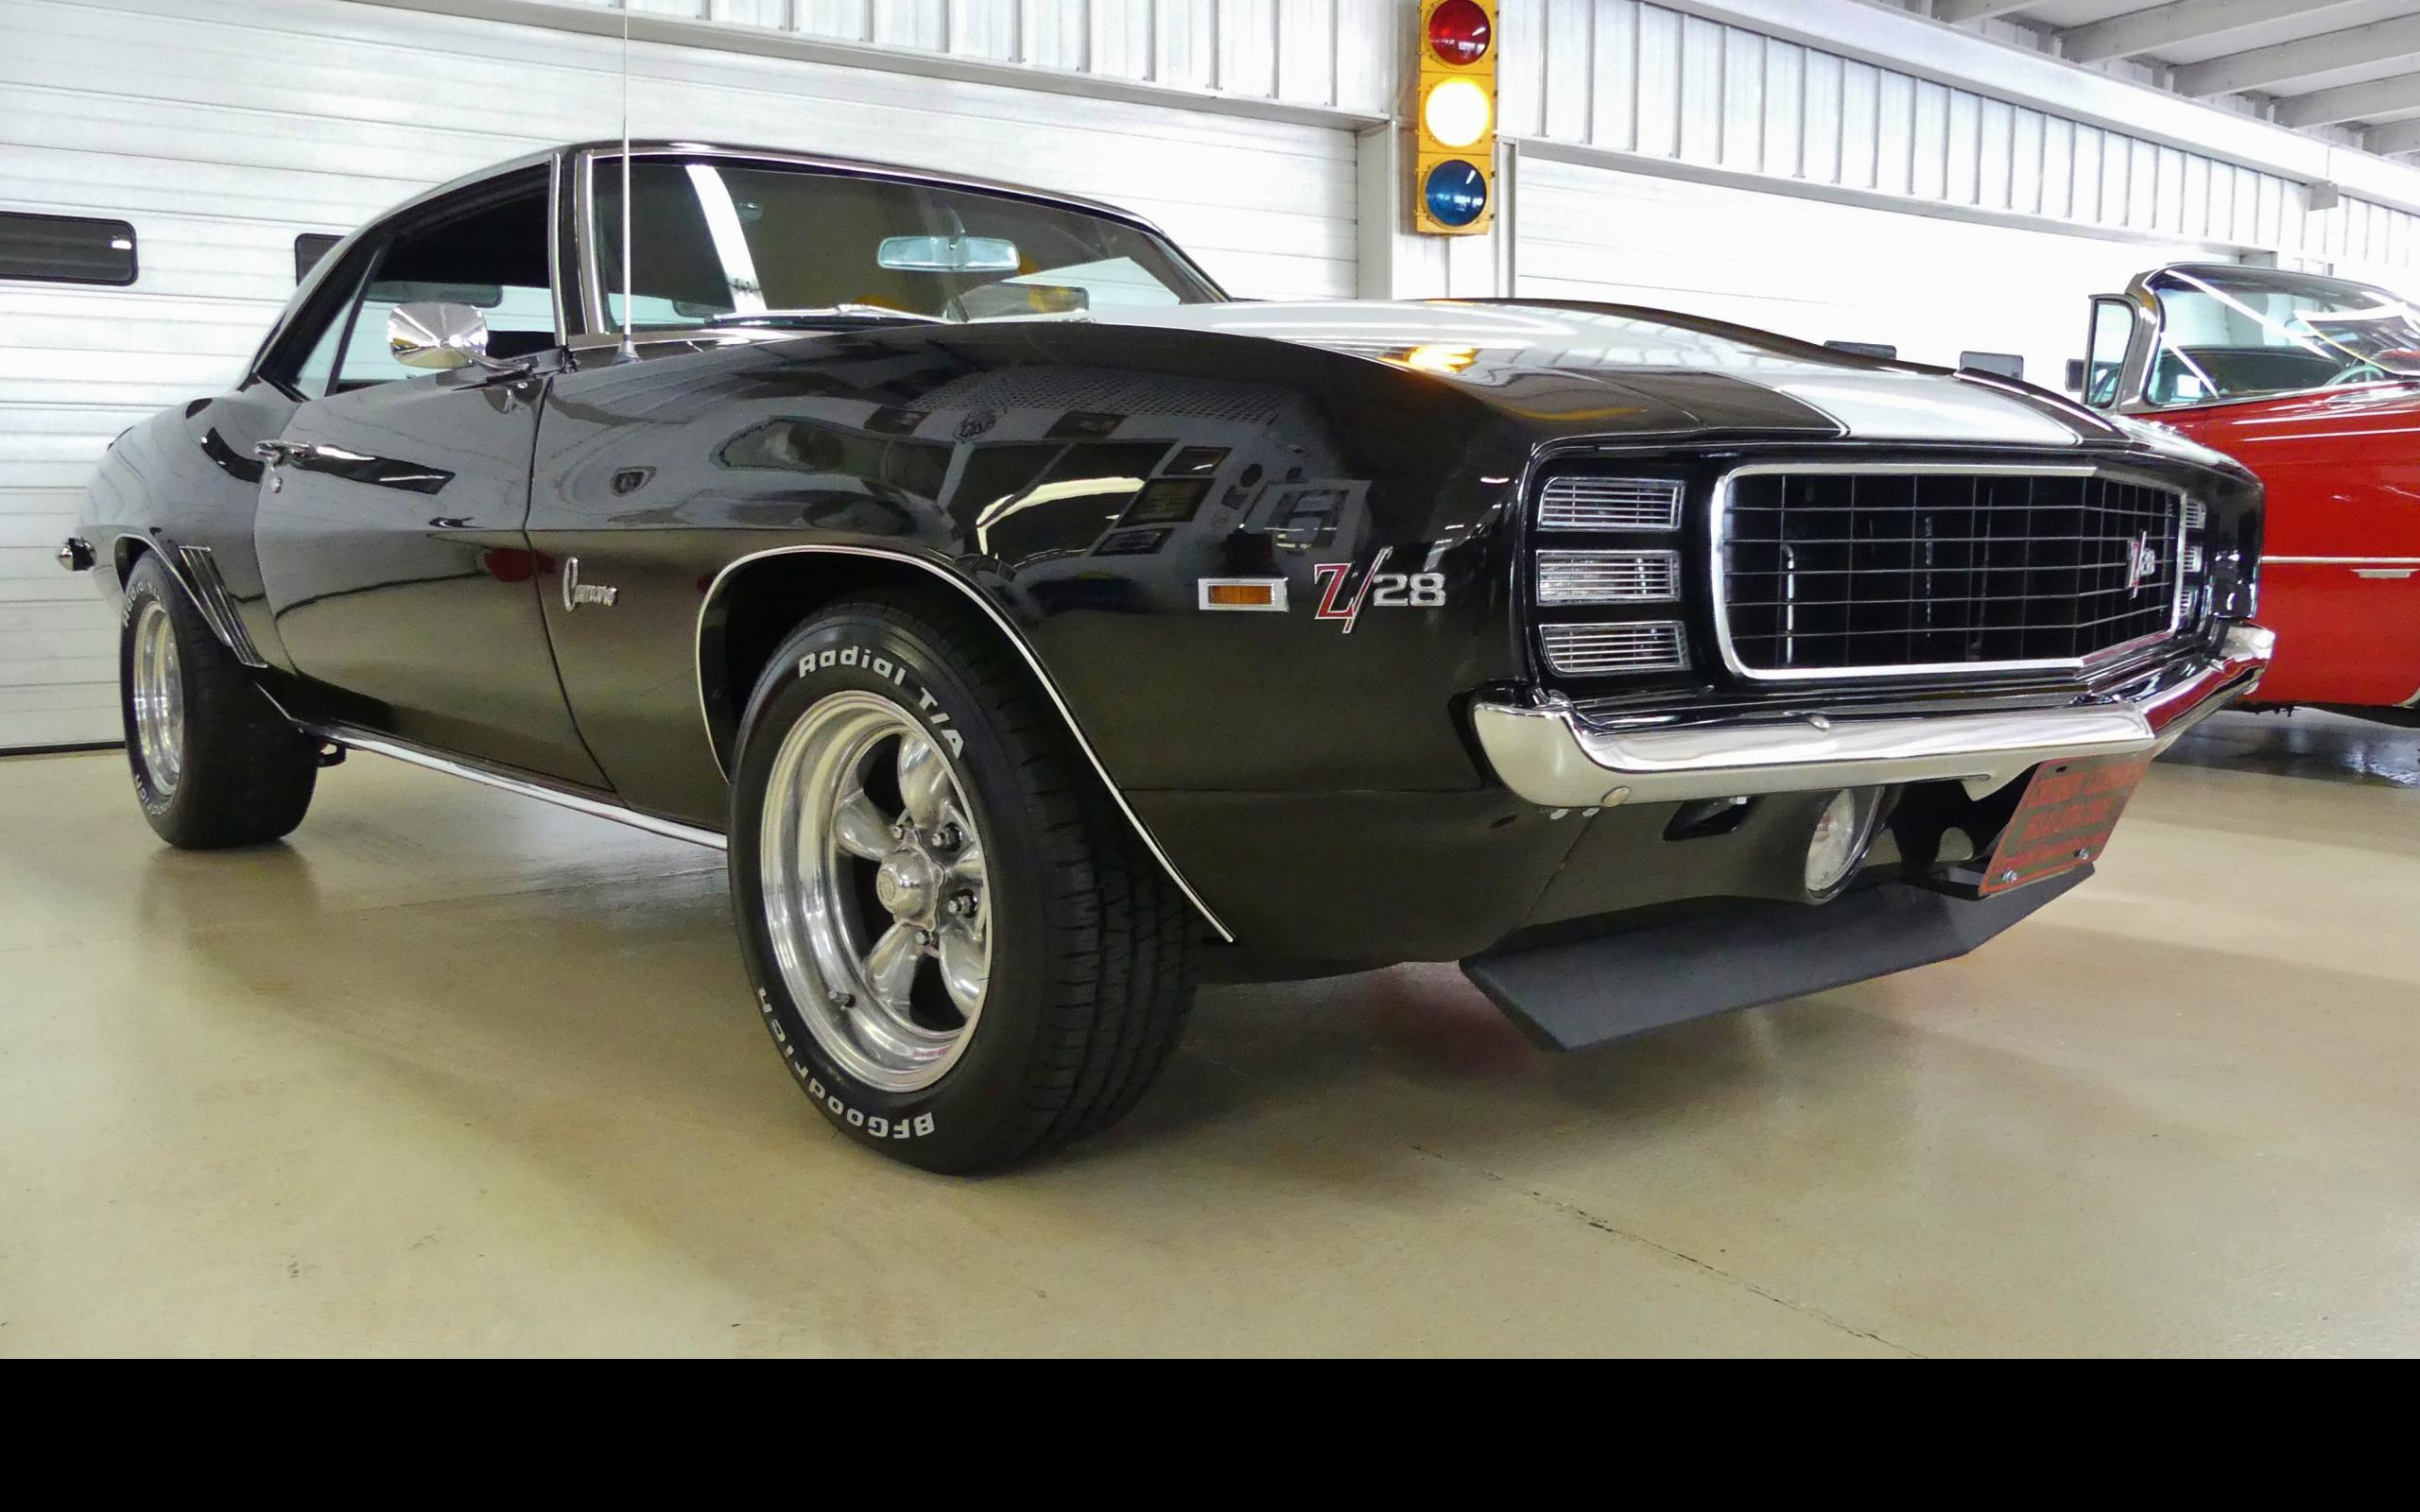 Inspirational 70s Cars for Sale Near Me